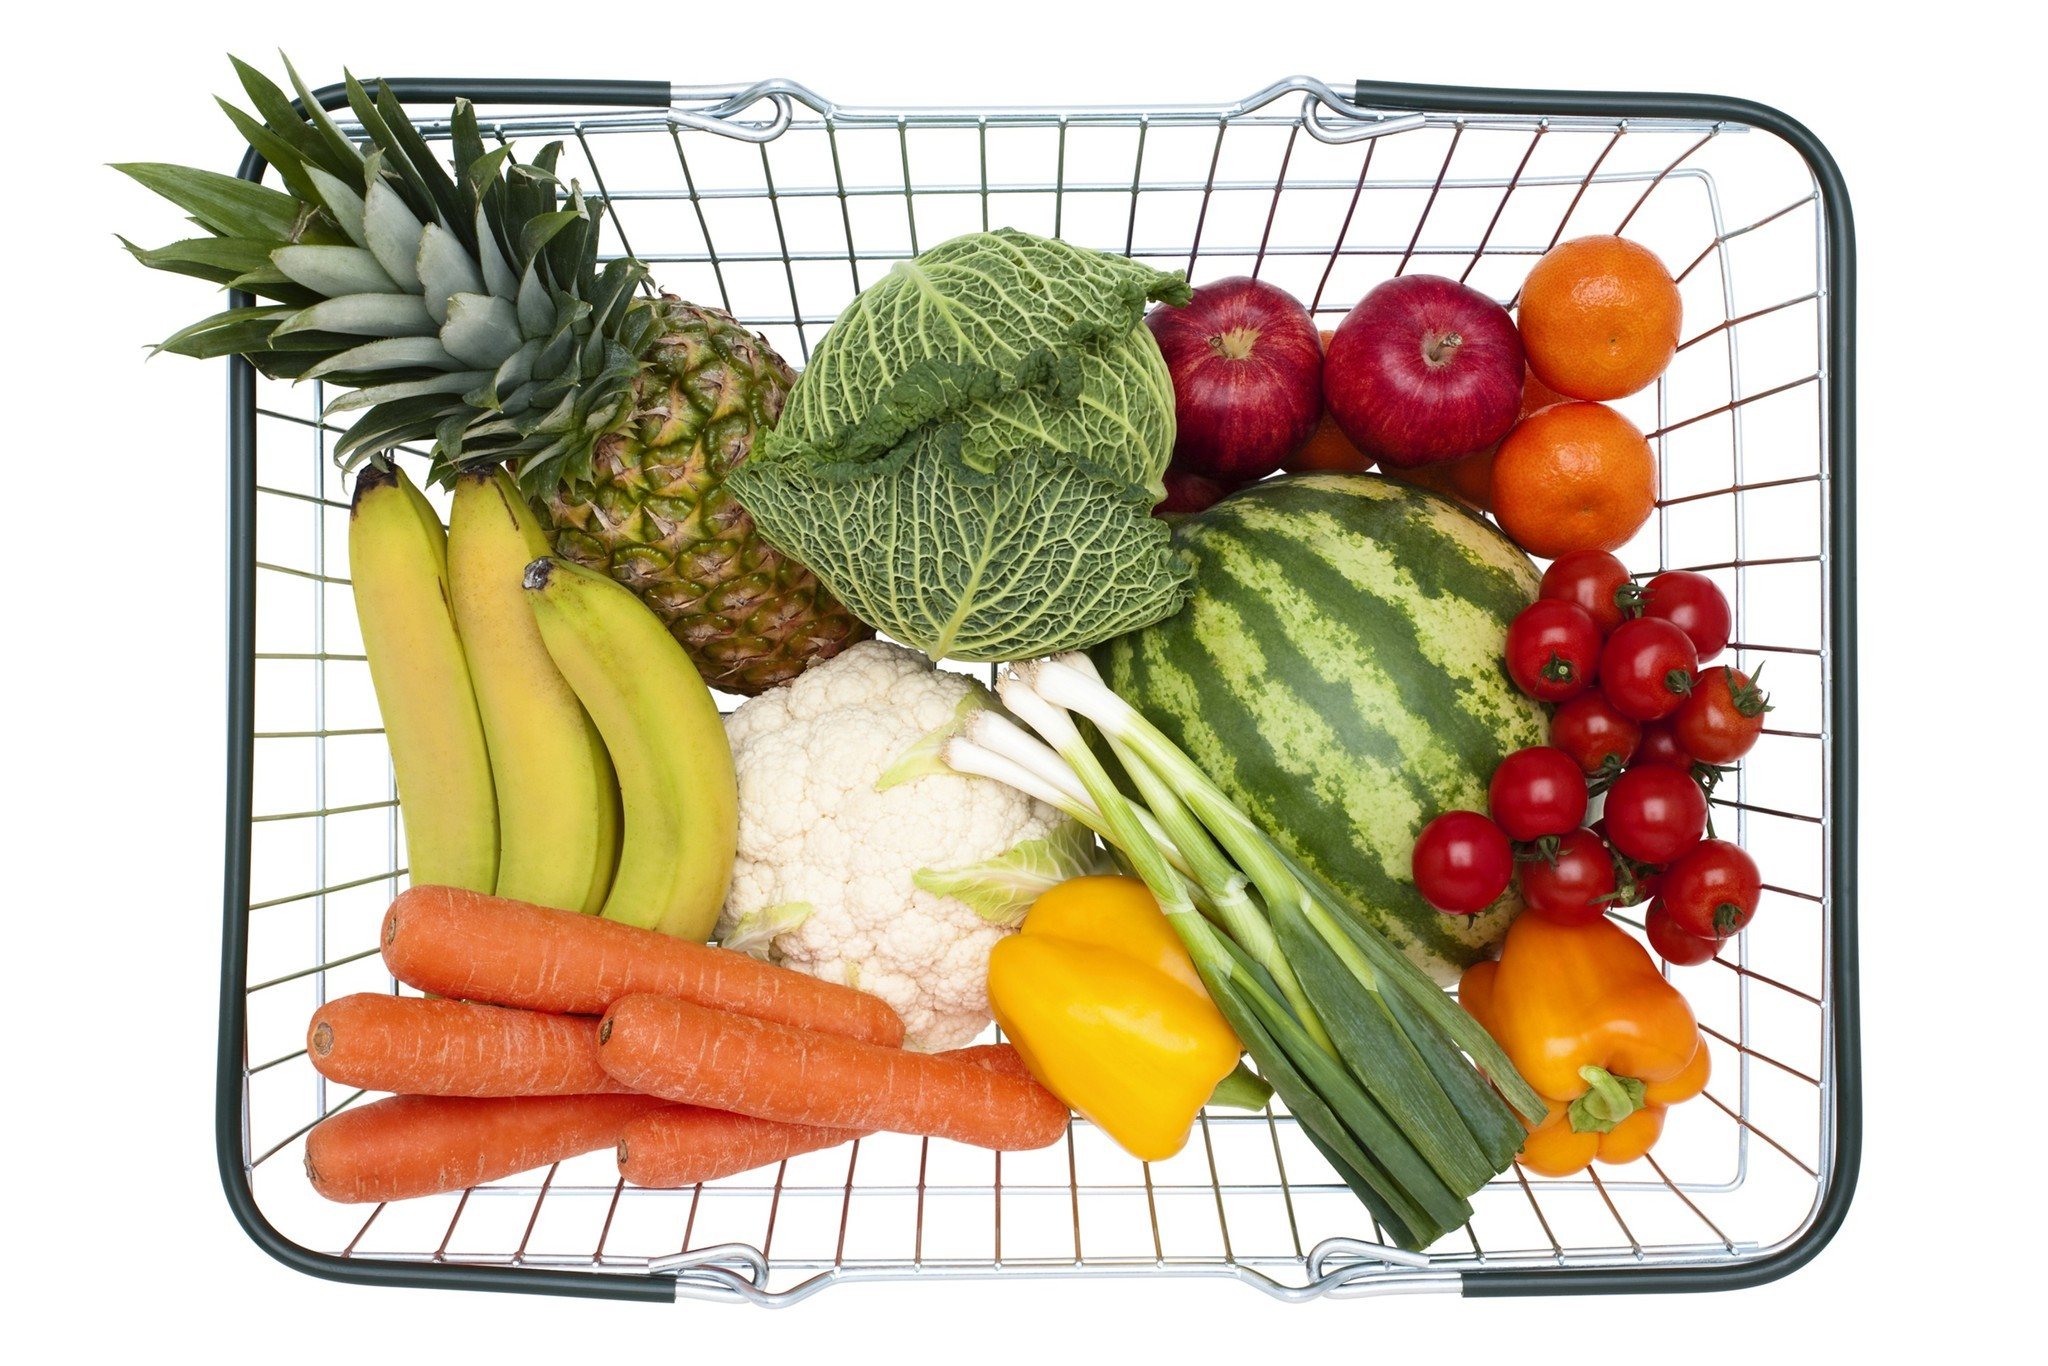 It's not your imagination. Eating healthy is more expensive, study says